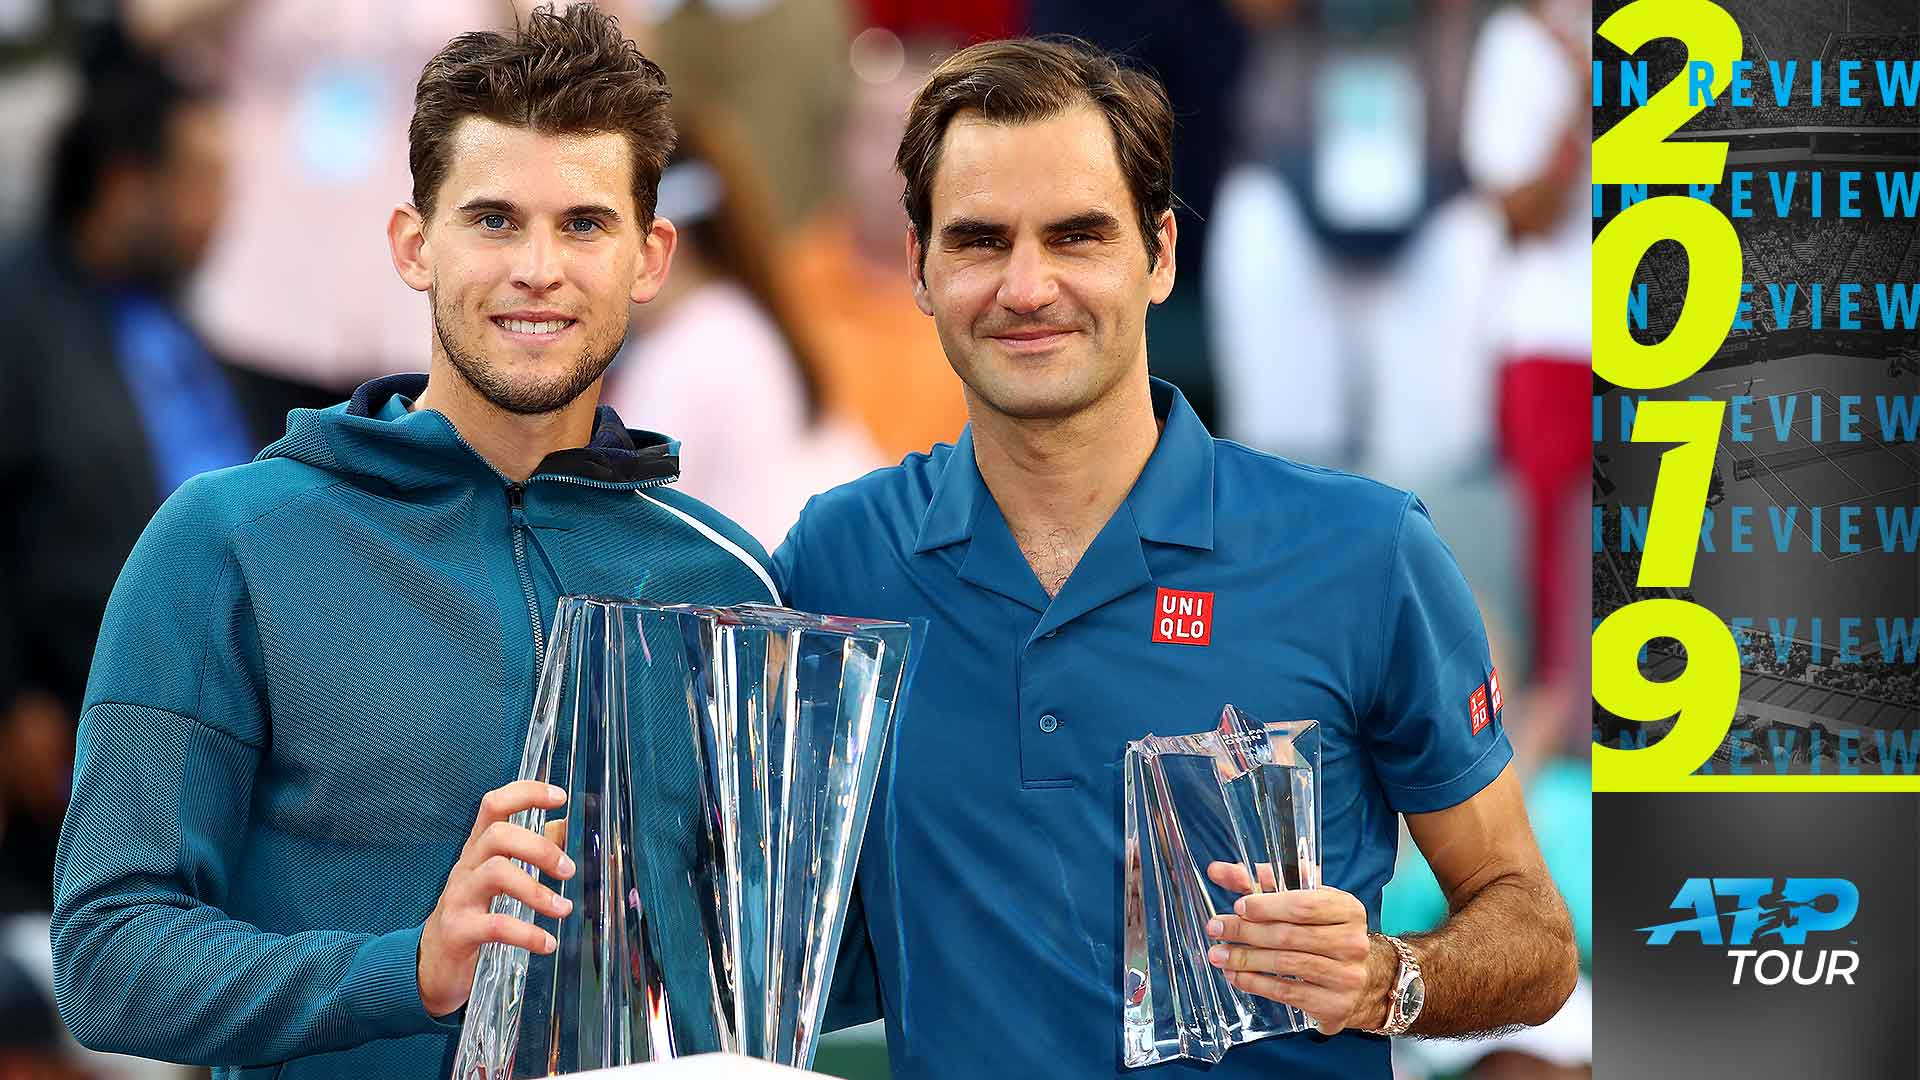 Dominic Thiem and Roger Federer faced off three times in 2019.